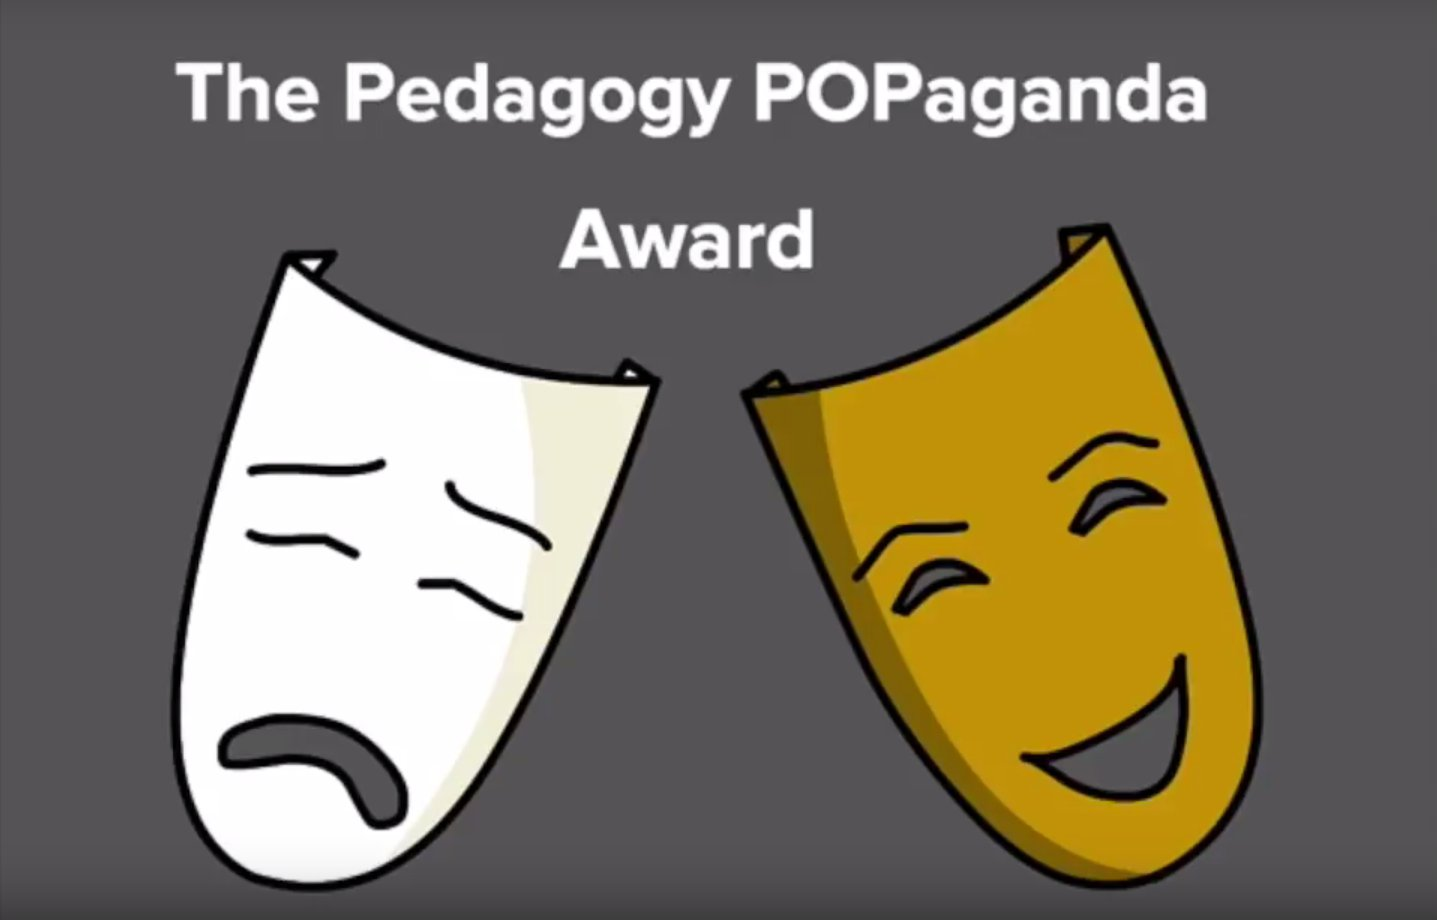 The Pedagogy POPaganda Award ISTE 2017